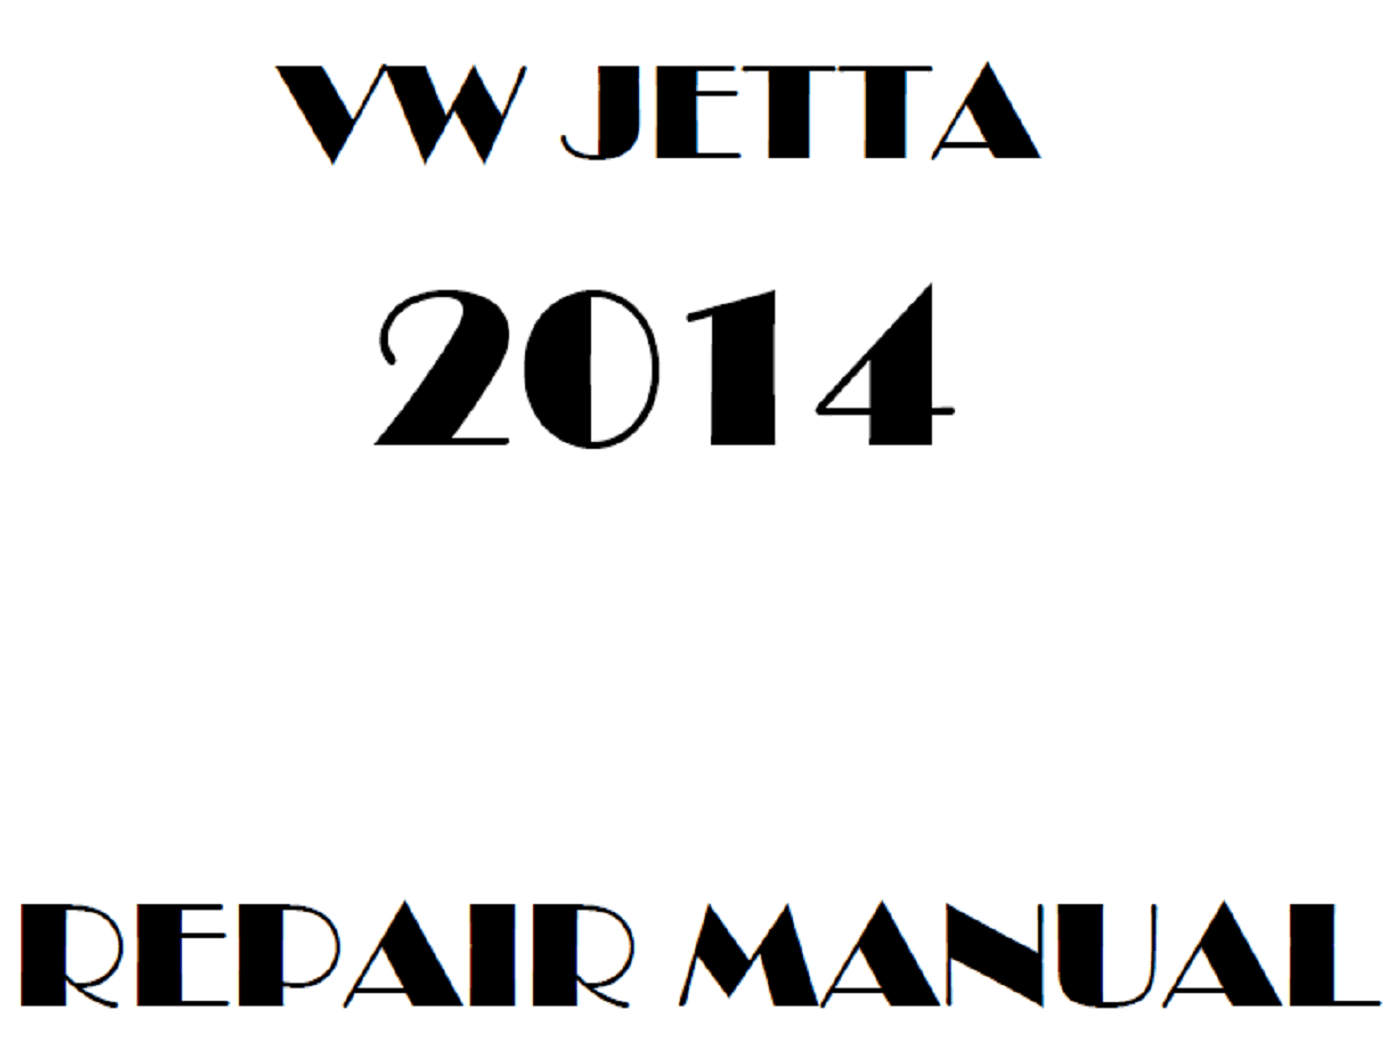 2014 Volkswagen Jetta repair manual